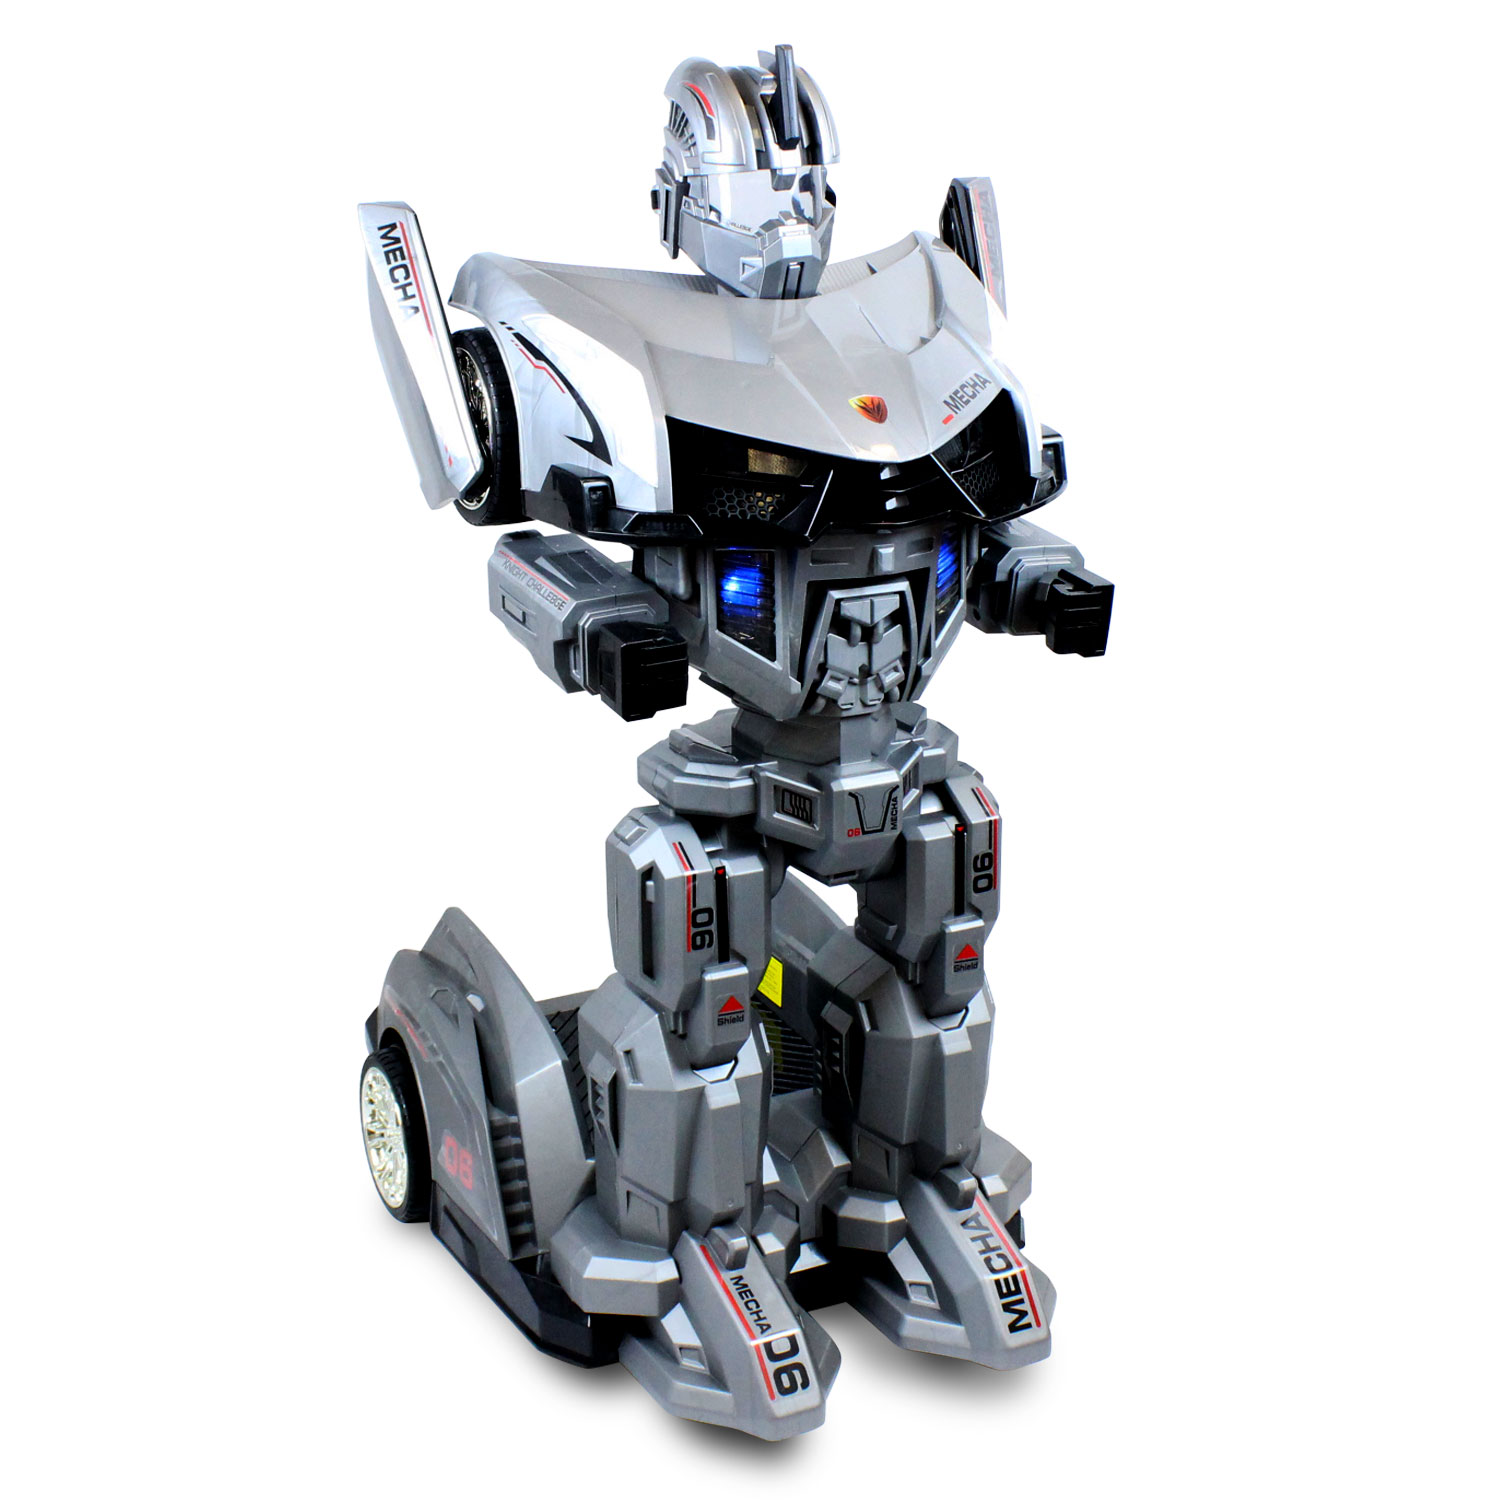 Robot Ride On Car Toy Silver Transforming Remote Controlled Electric Ride-On Toy for Kids Ages 7 to 12